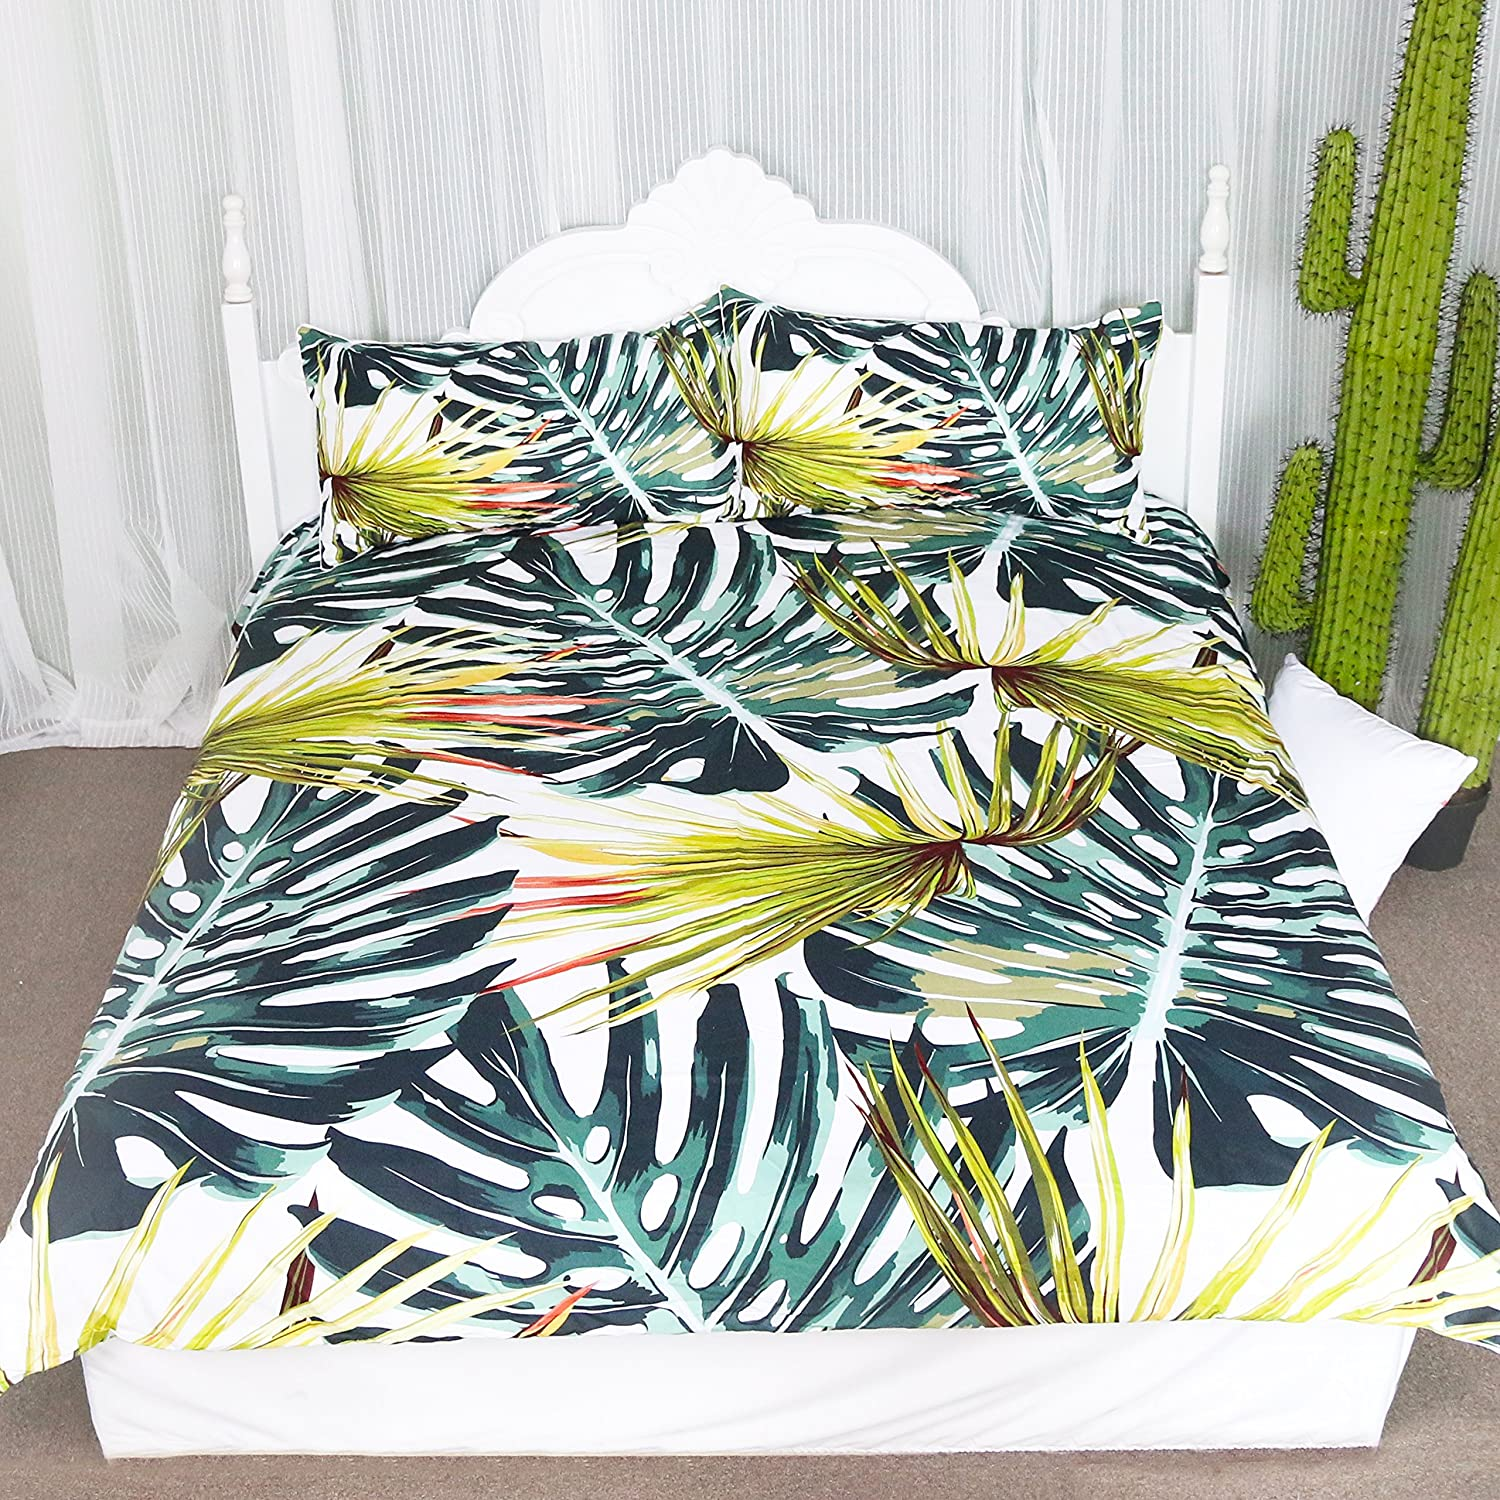 Monstera Deliciosa Duvet Cover Set, Tropical Islands Plants, 3 Pieces